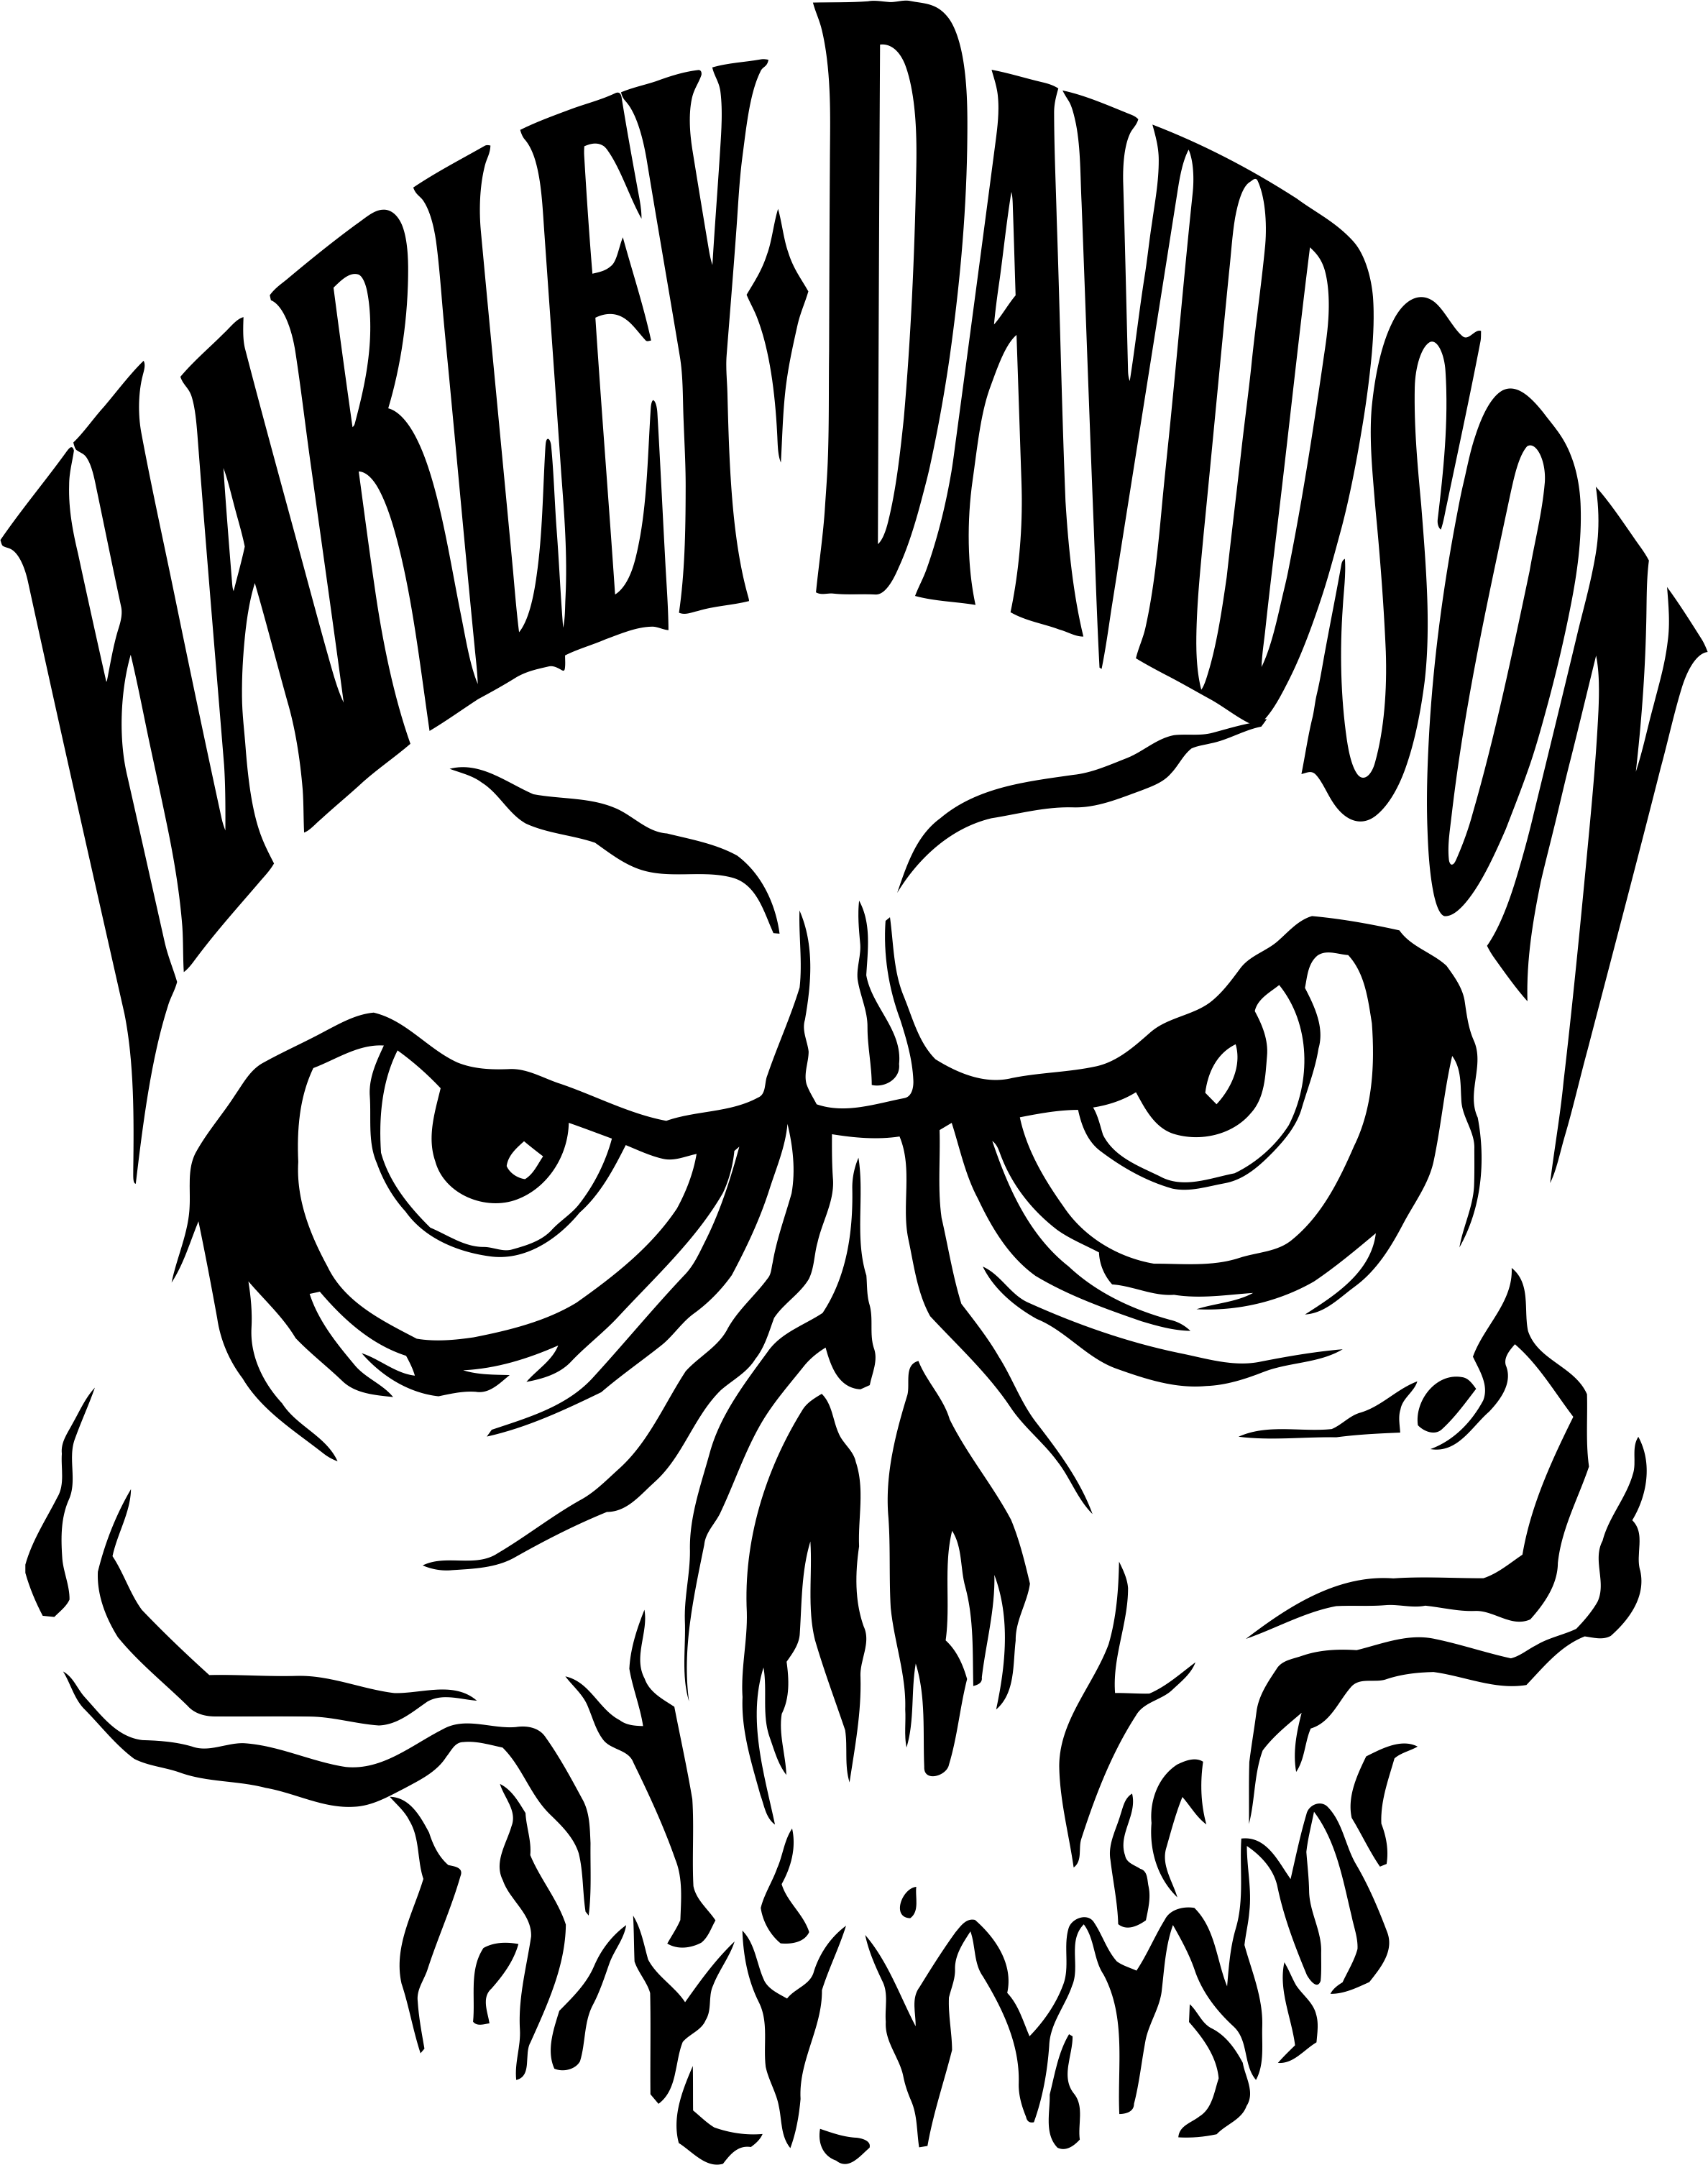 I Just Like The Simple Skull Face Harley Davidson Logo Harley Davidson Decals Harley Davidson Art